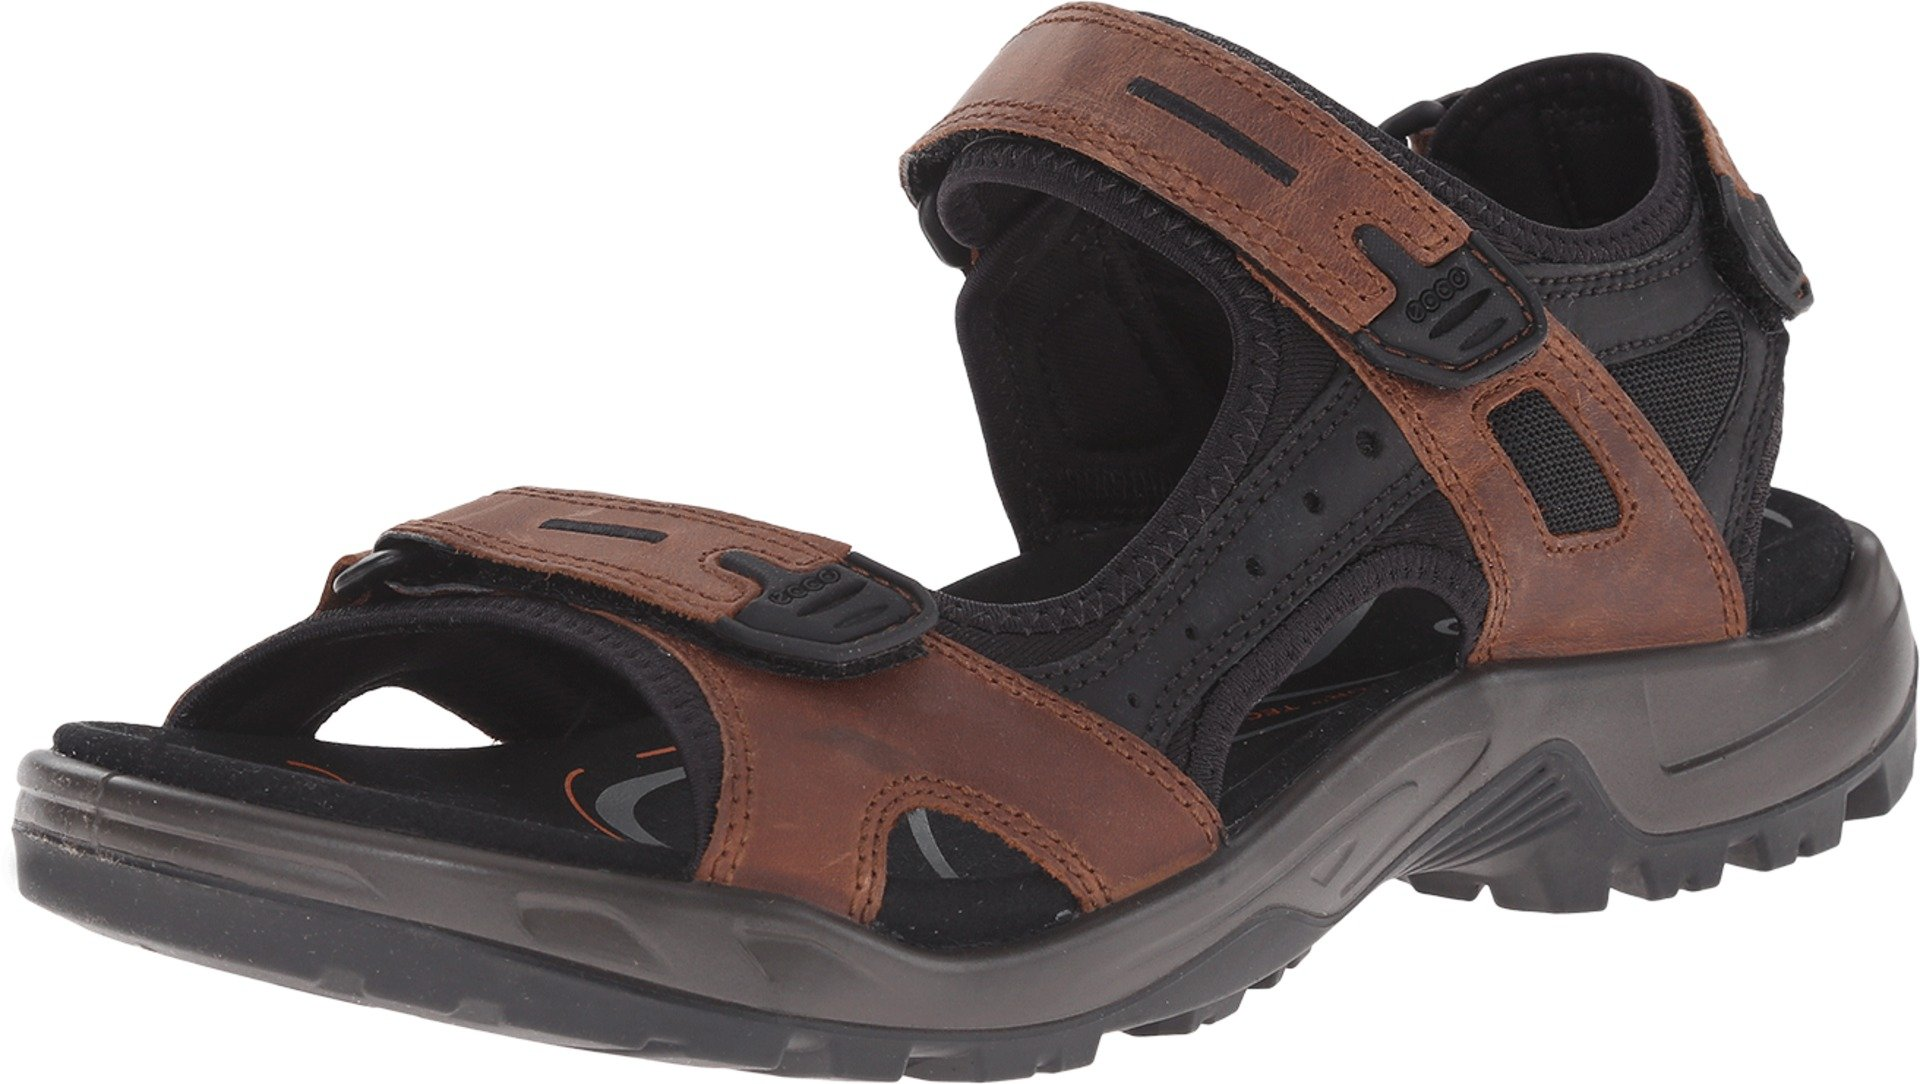 ECCO Men's Yucatan Sandal,Bison/Black/Black,44 EU (US Men's 10-10.5 M) by ECCO